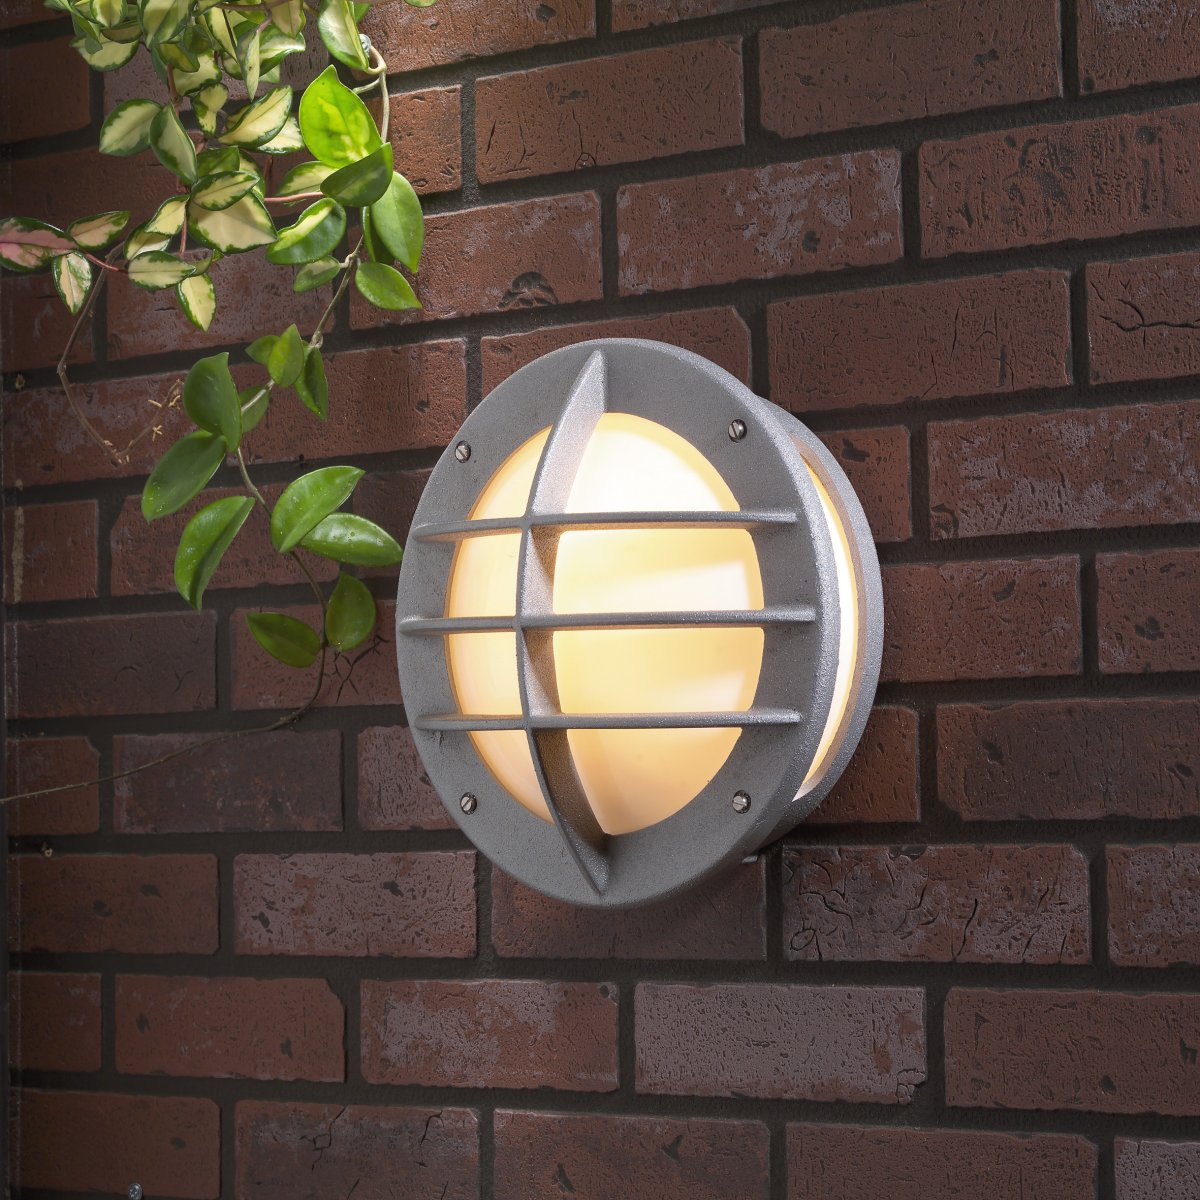 Outdoor Lighting Companies: High Grade Bulkhead